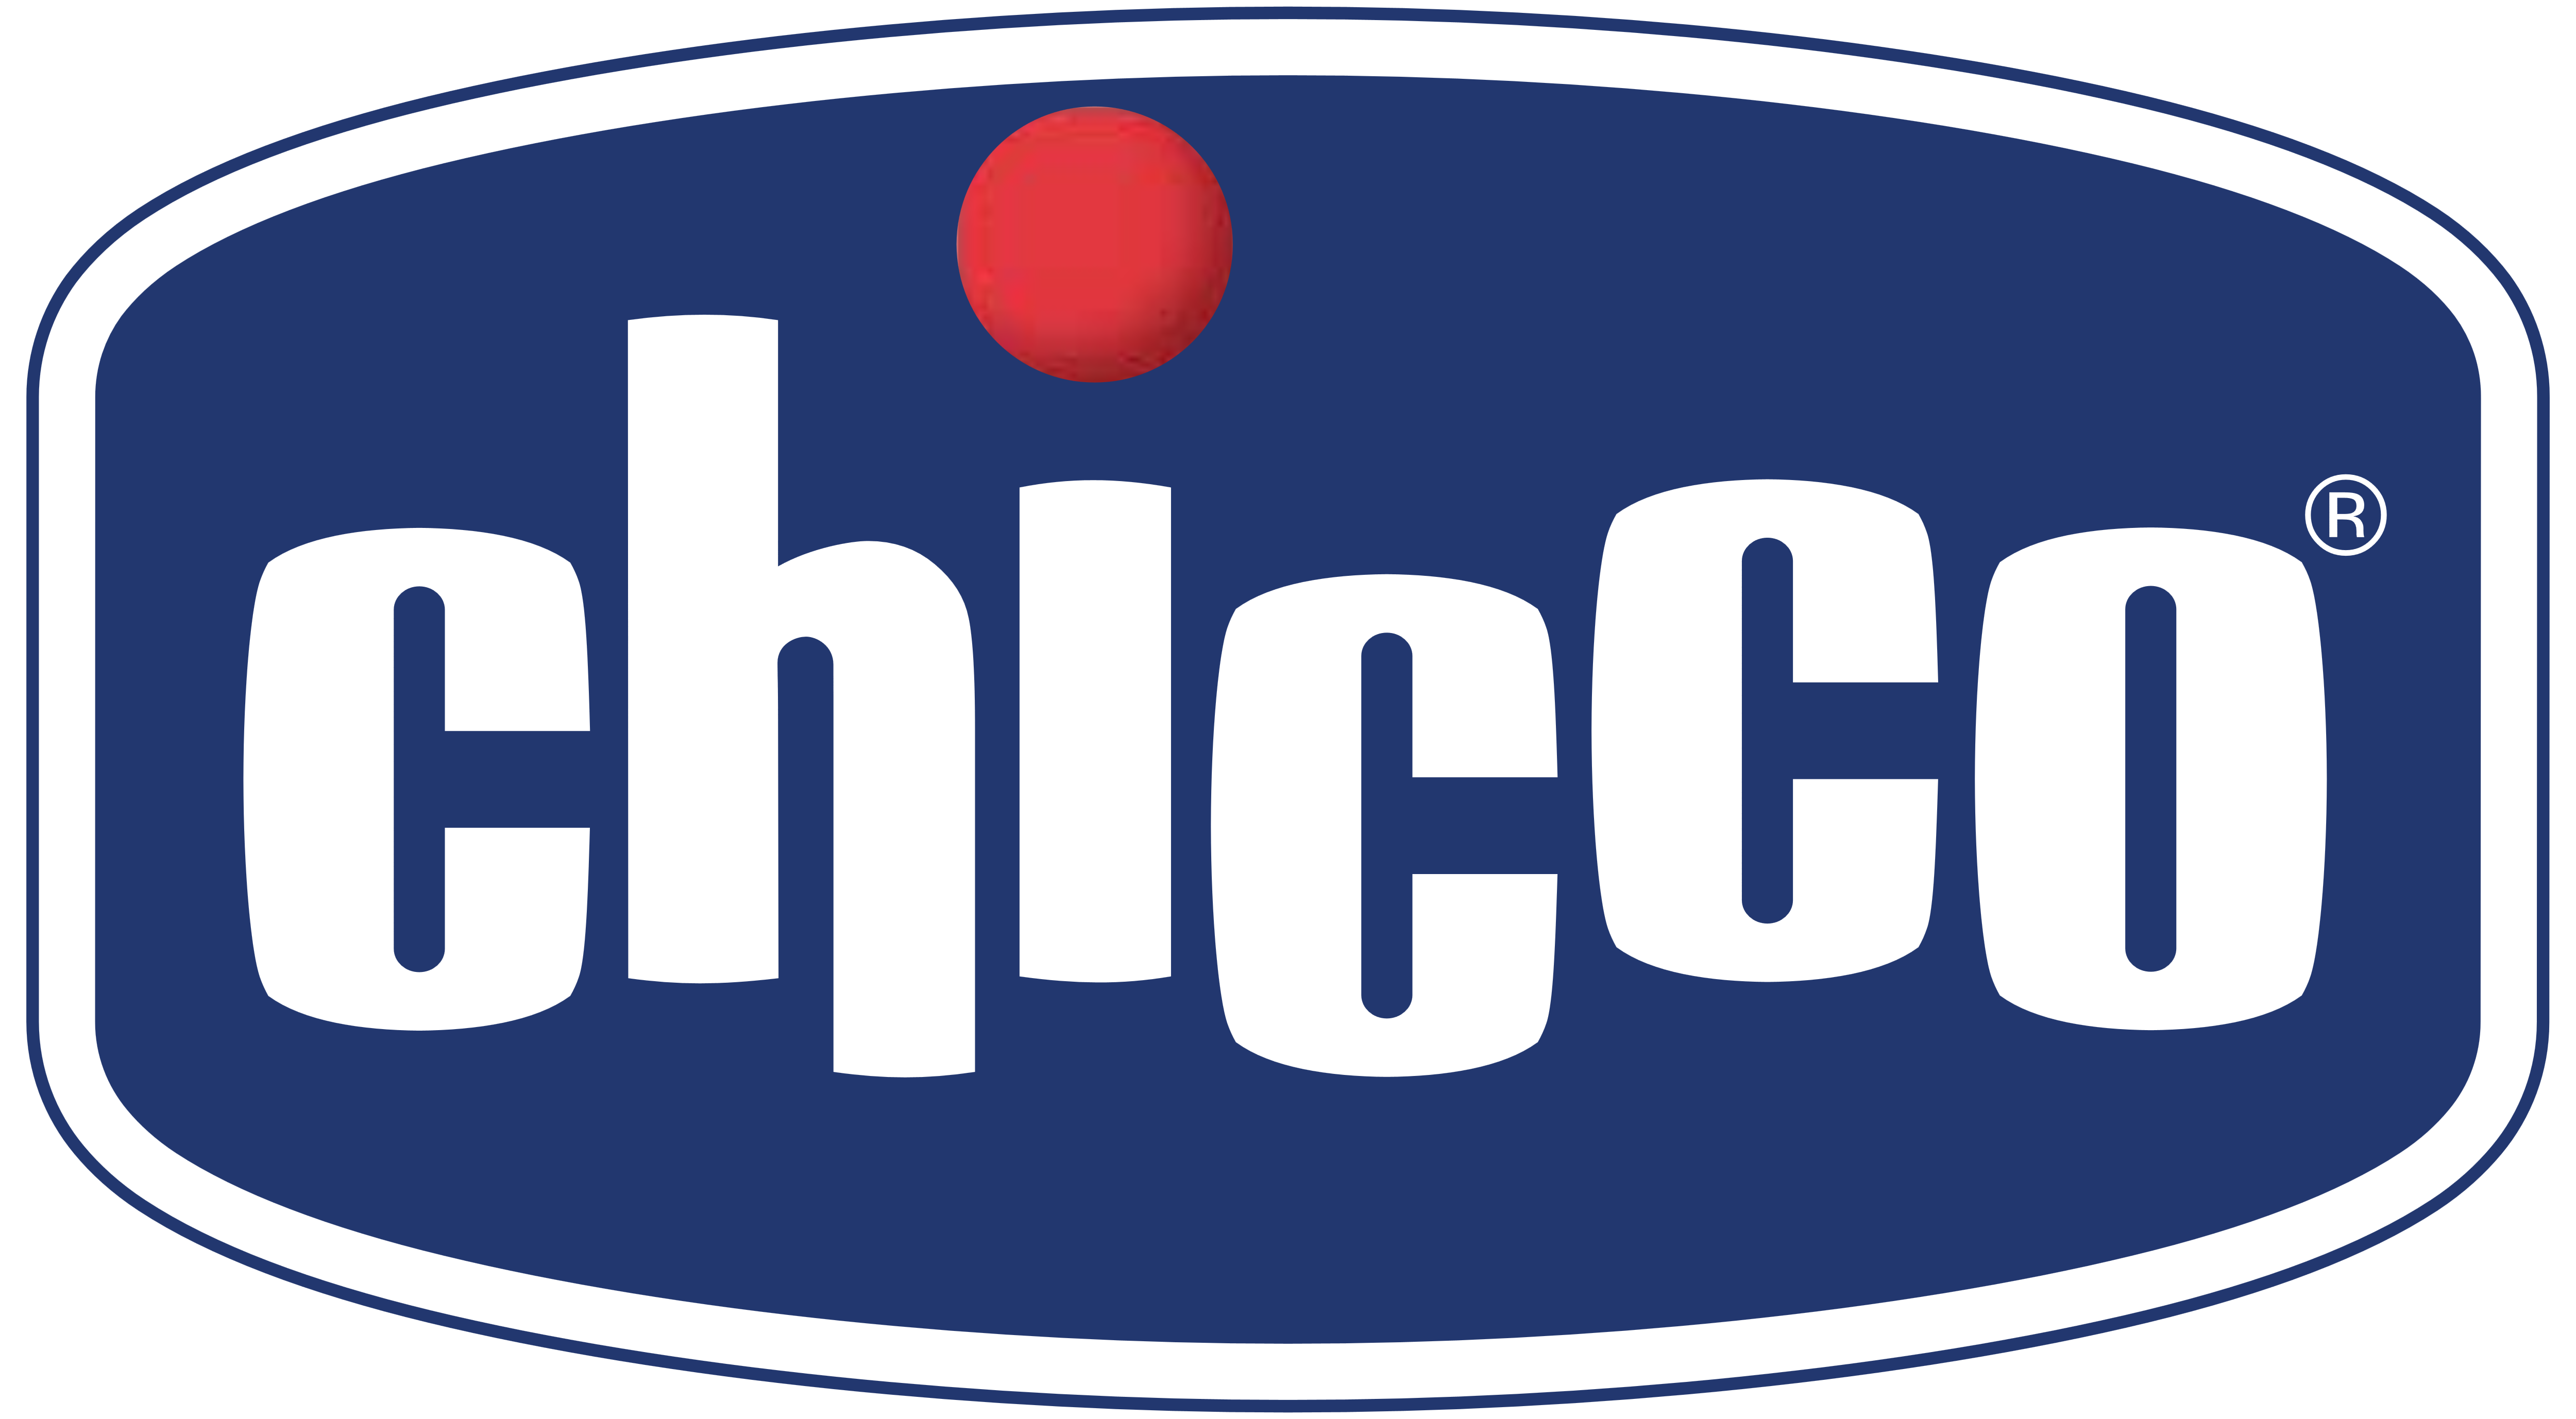 Chicco - Chicco PNG